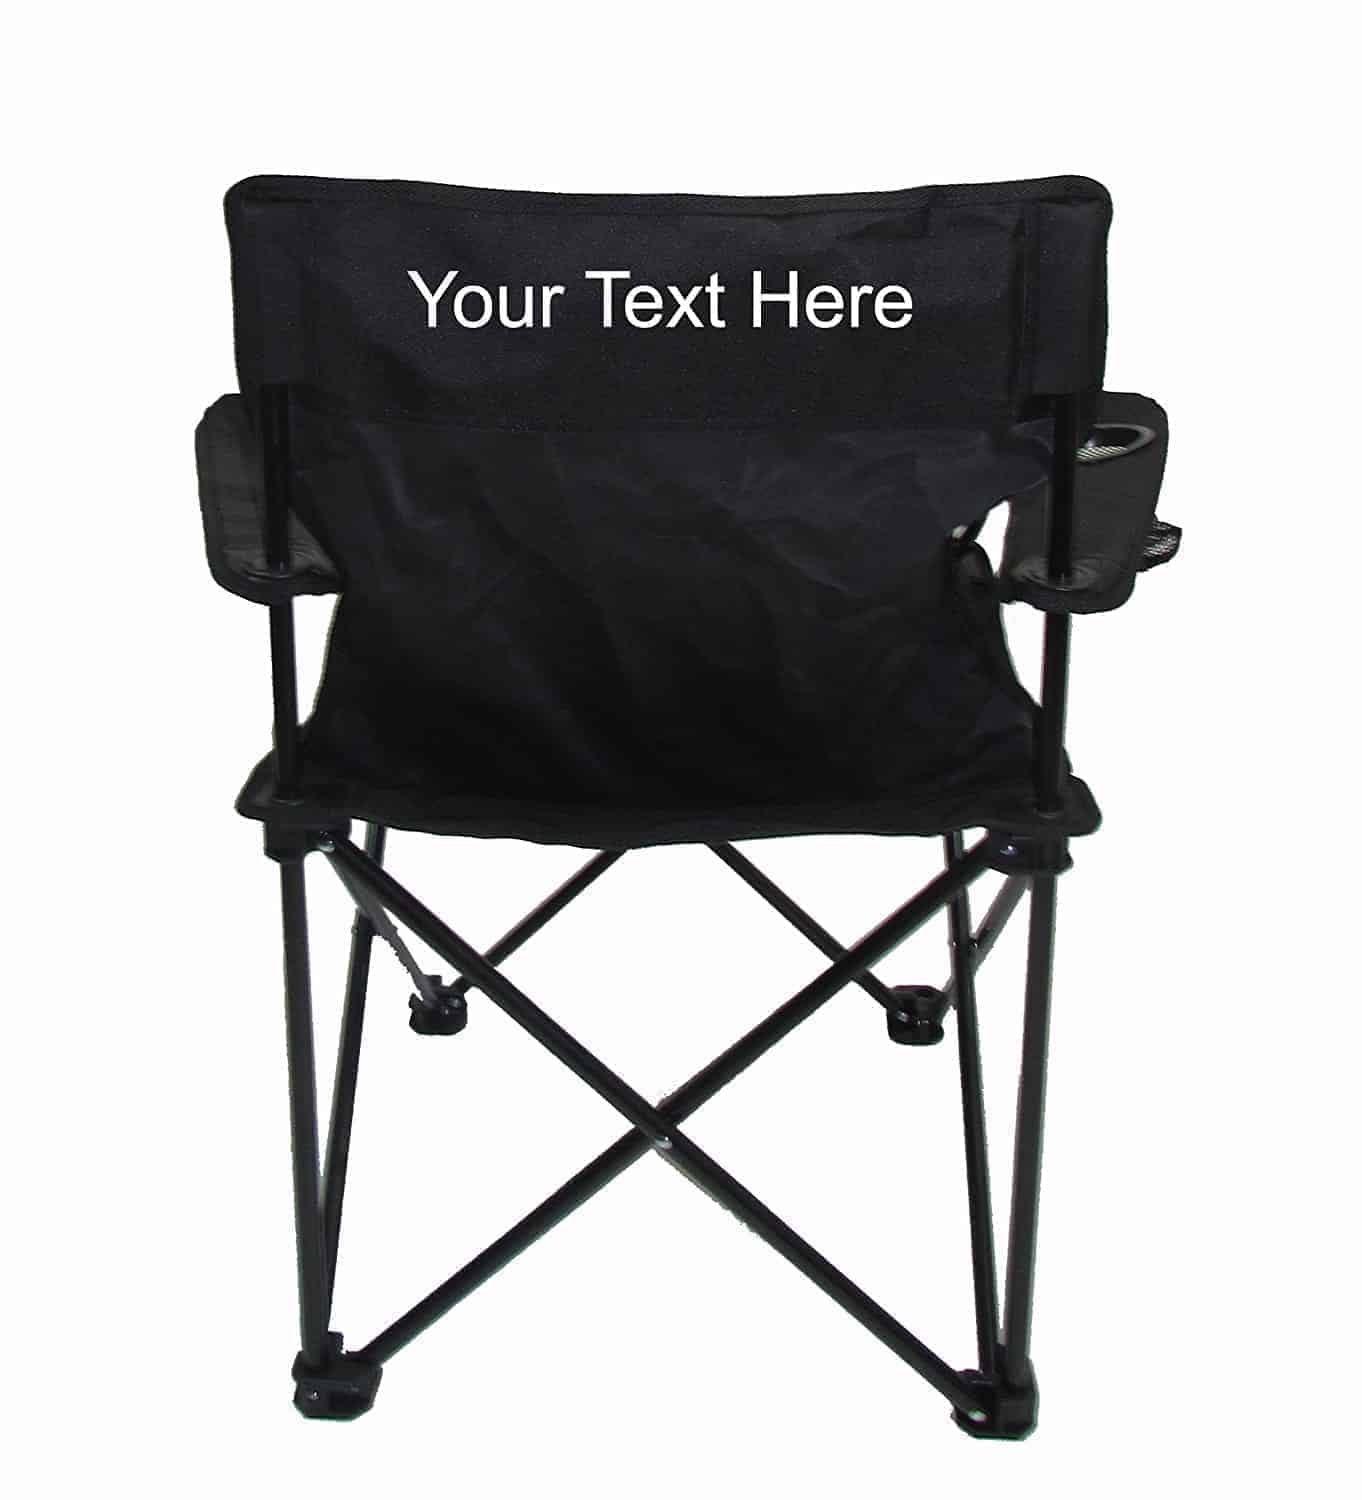 personalized travel chair